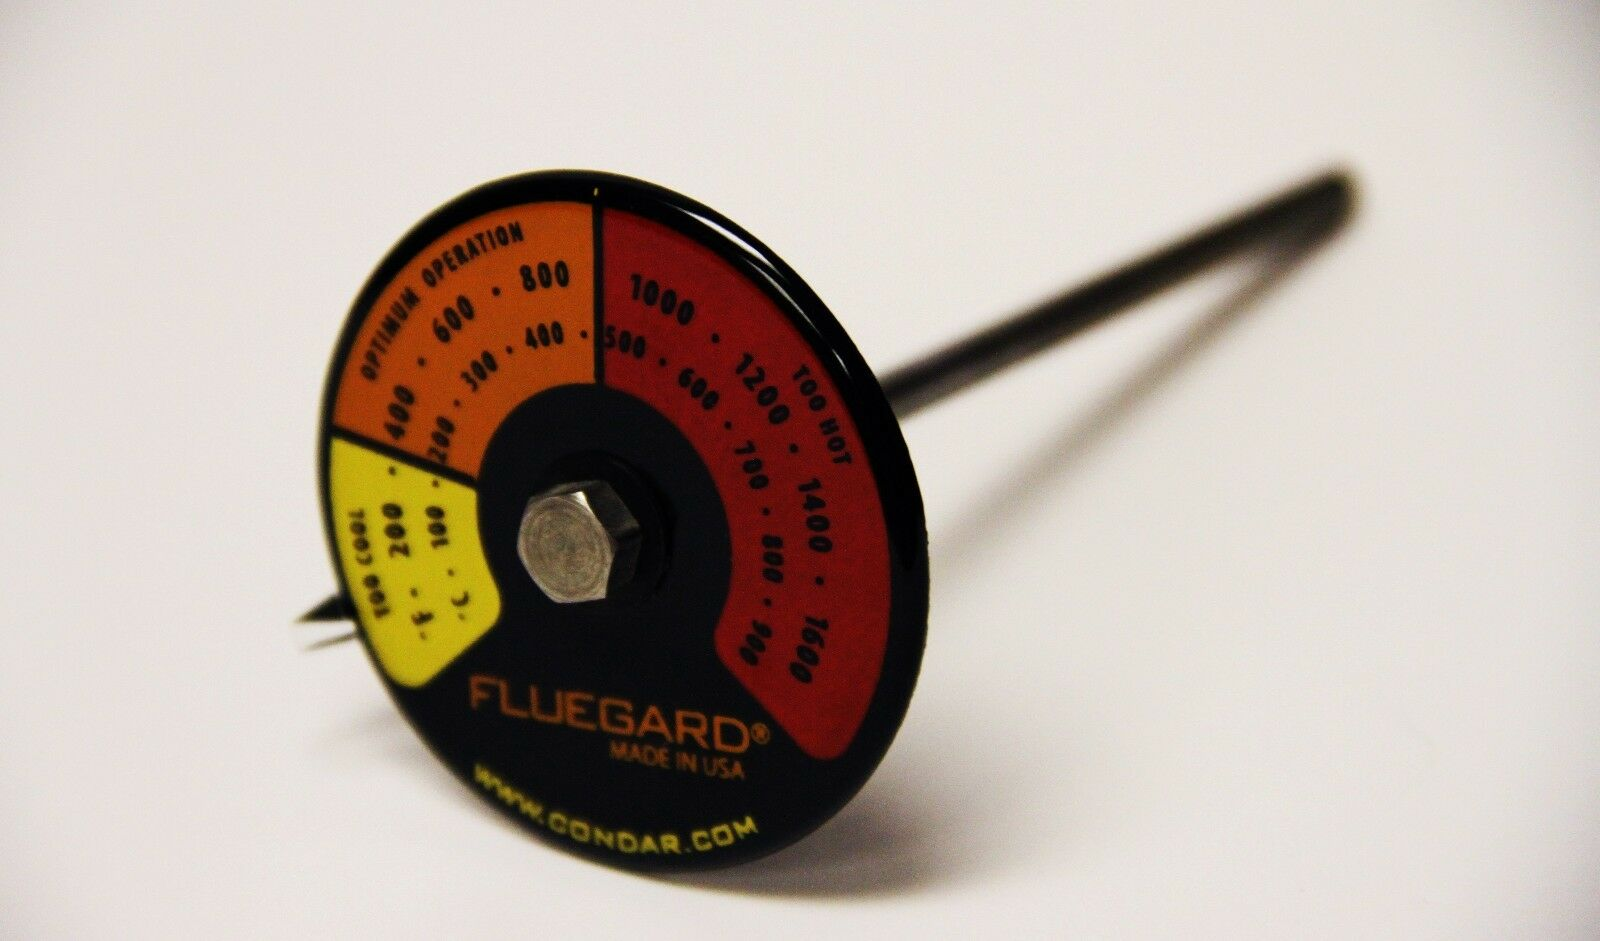 3-39 Stove pipe probe thermometer for double wall stovepipe on wood stoves